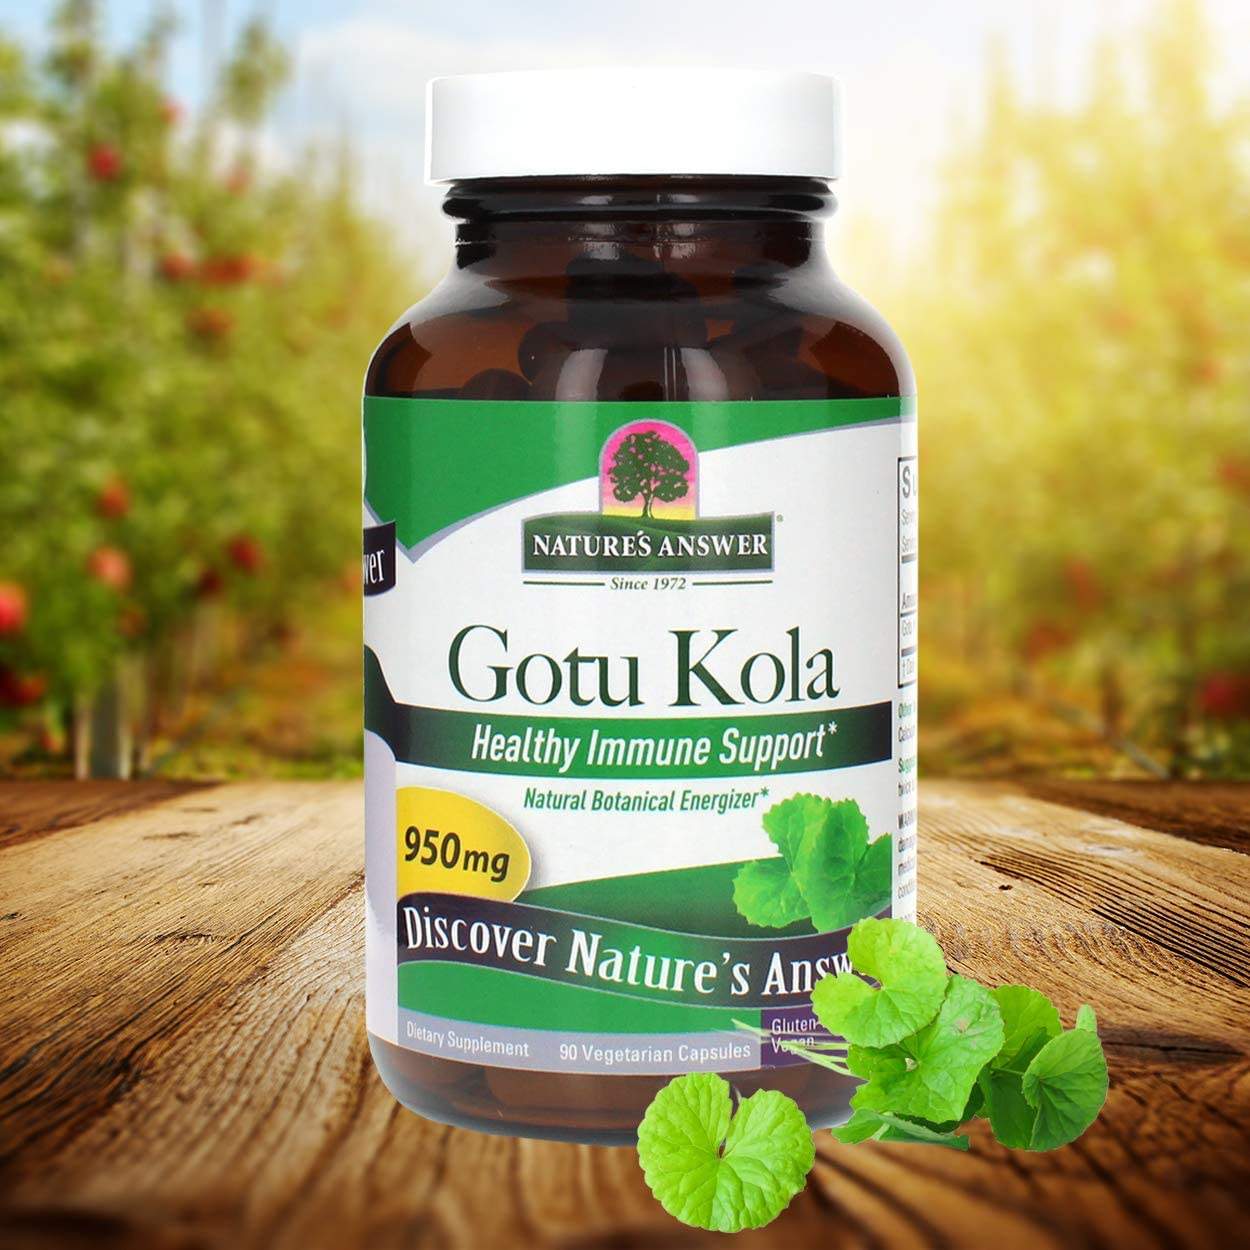 Nature's Answer Gotu Kola | Dietary Supplement | Supports a Healthy Immune System | Made in the USA | Gluten-Free, Vegan &  Vegetarian Capsules 60ct